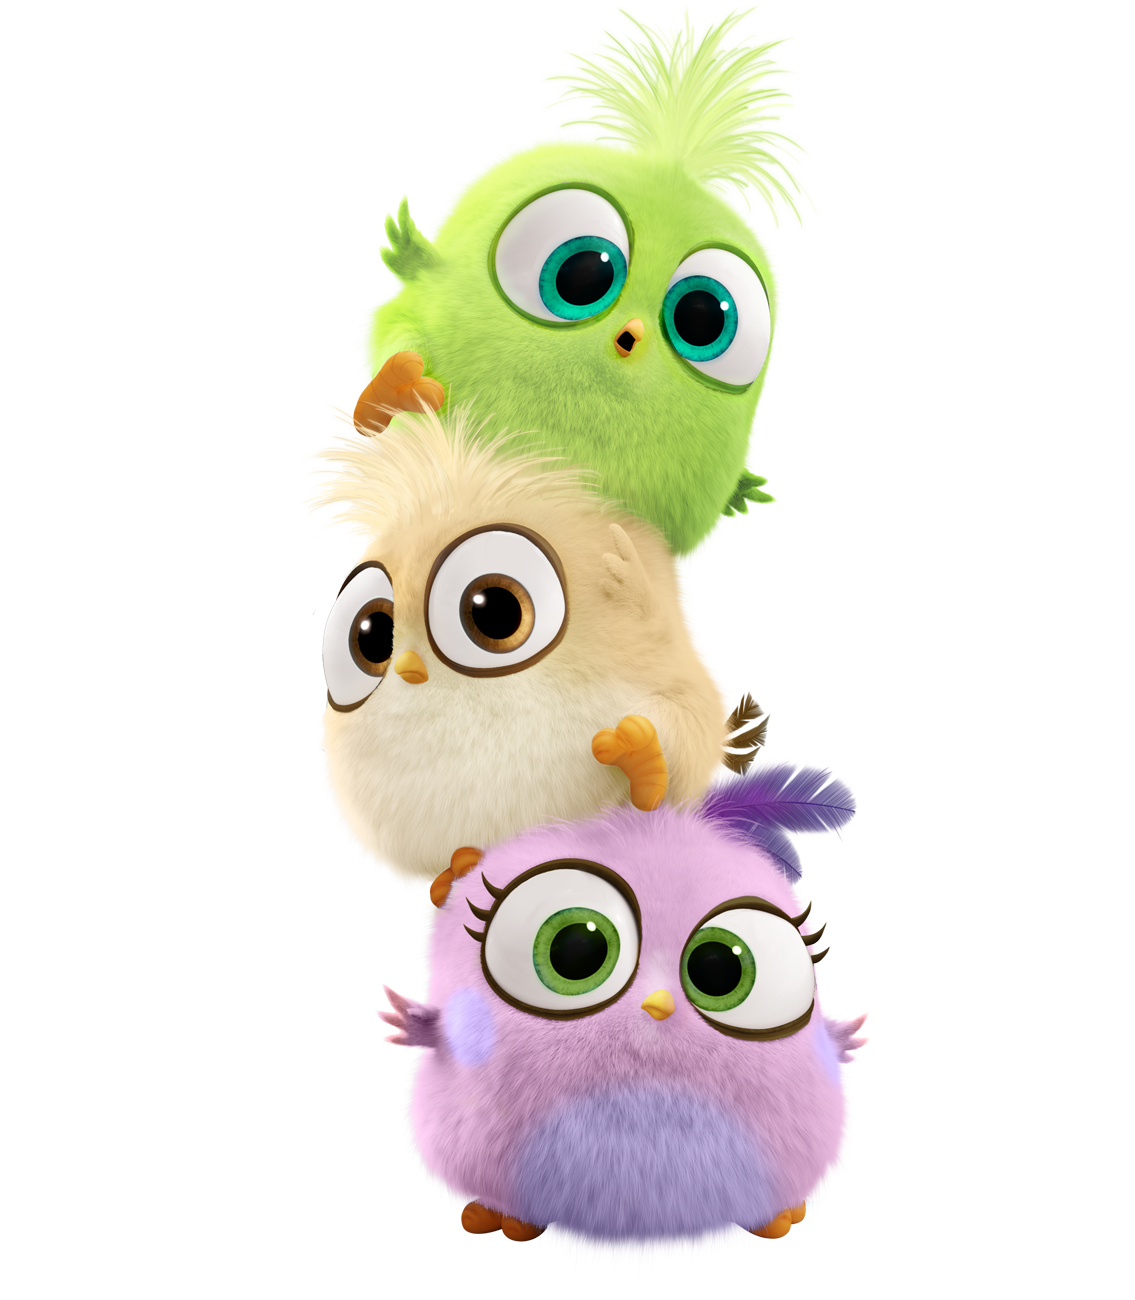 Worm clipart angry. Birds movie bird hatchlings